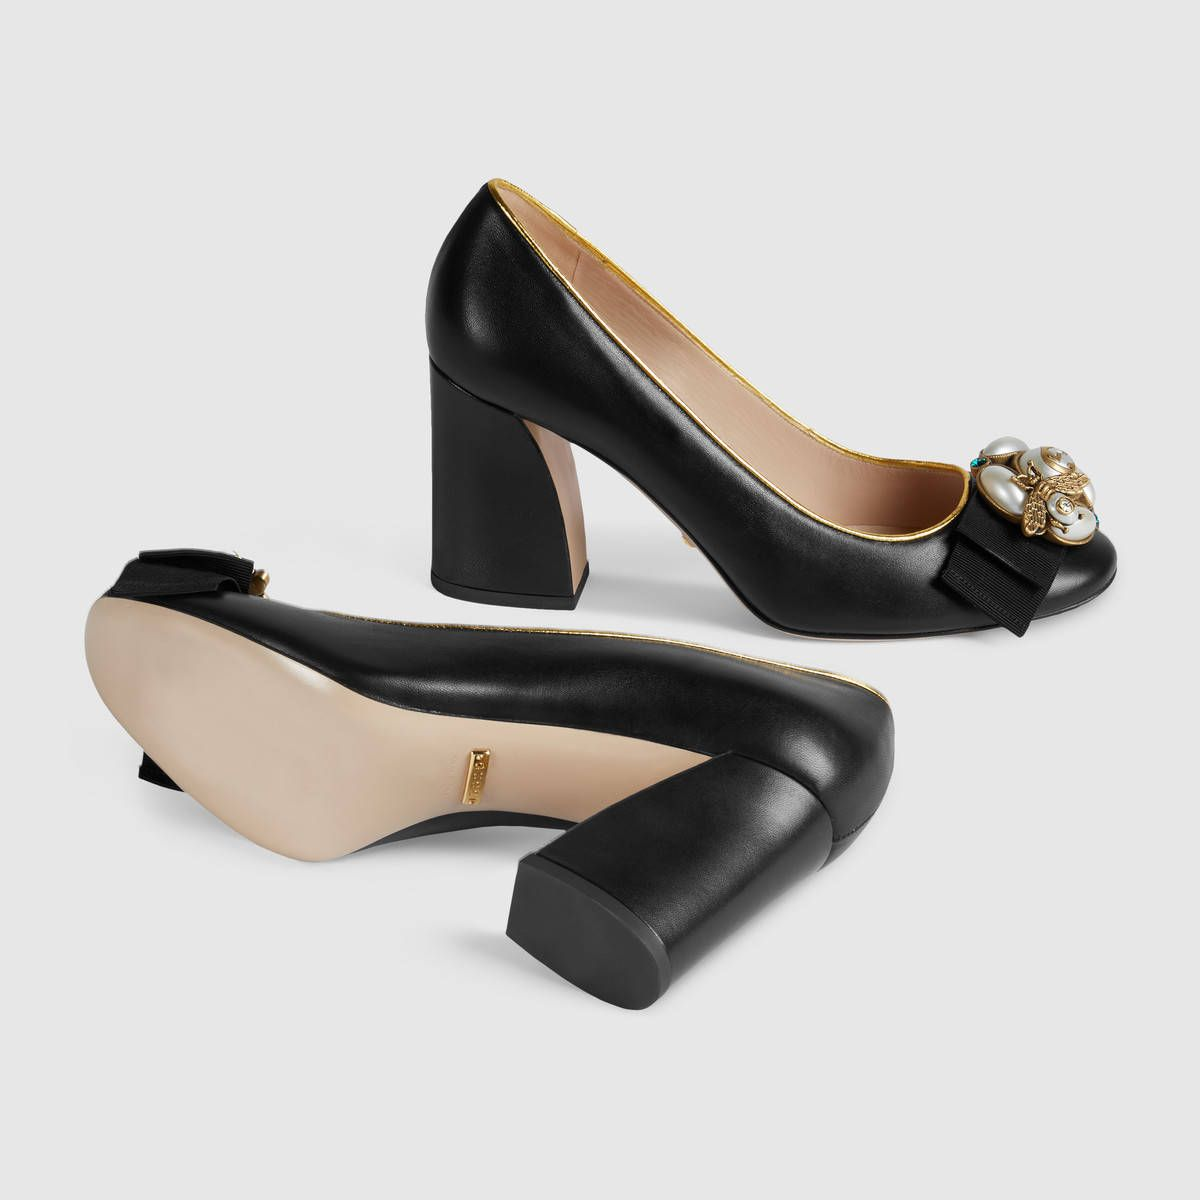 Gucci Leather mid-heel pump with bee